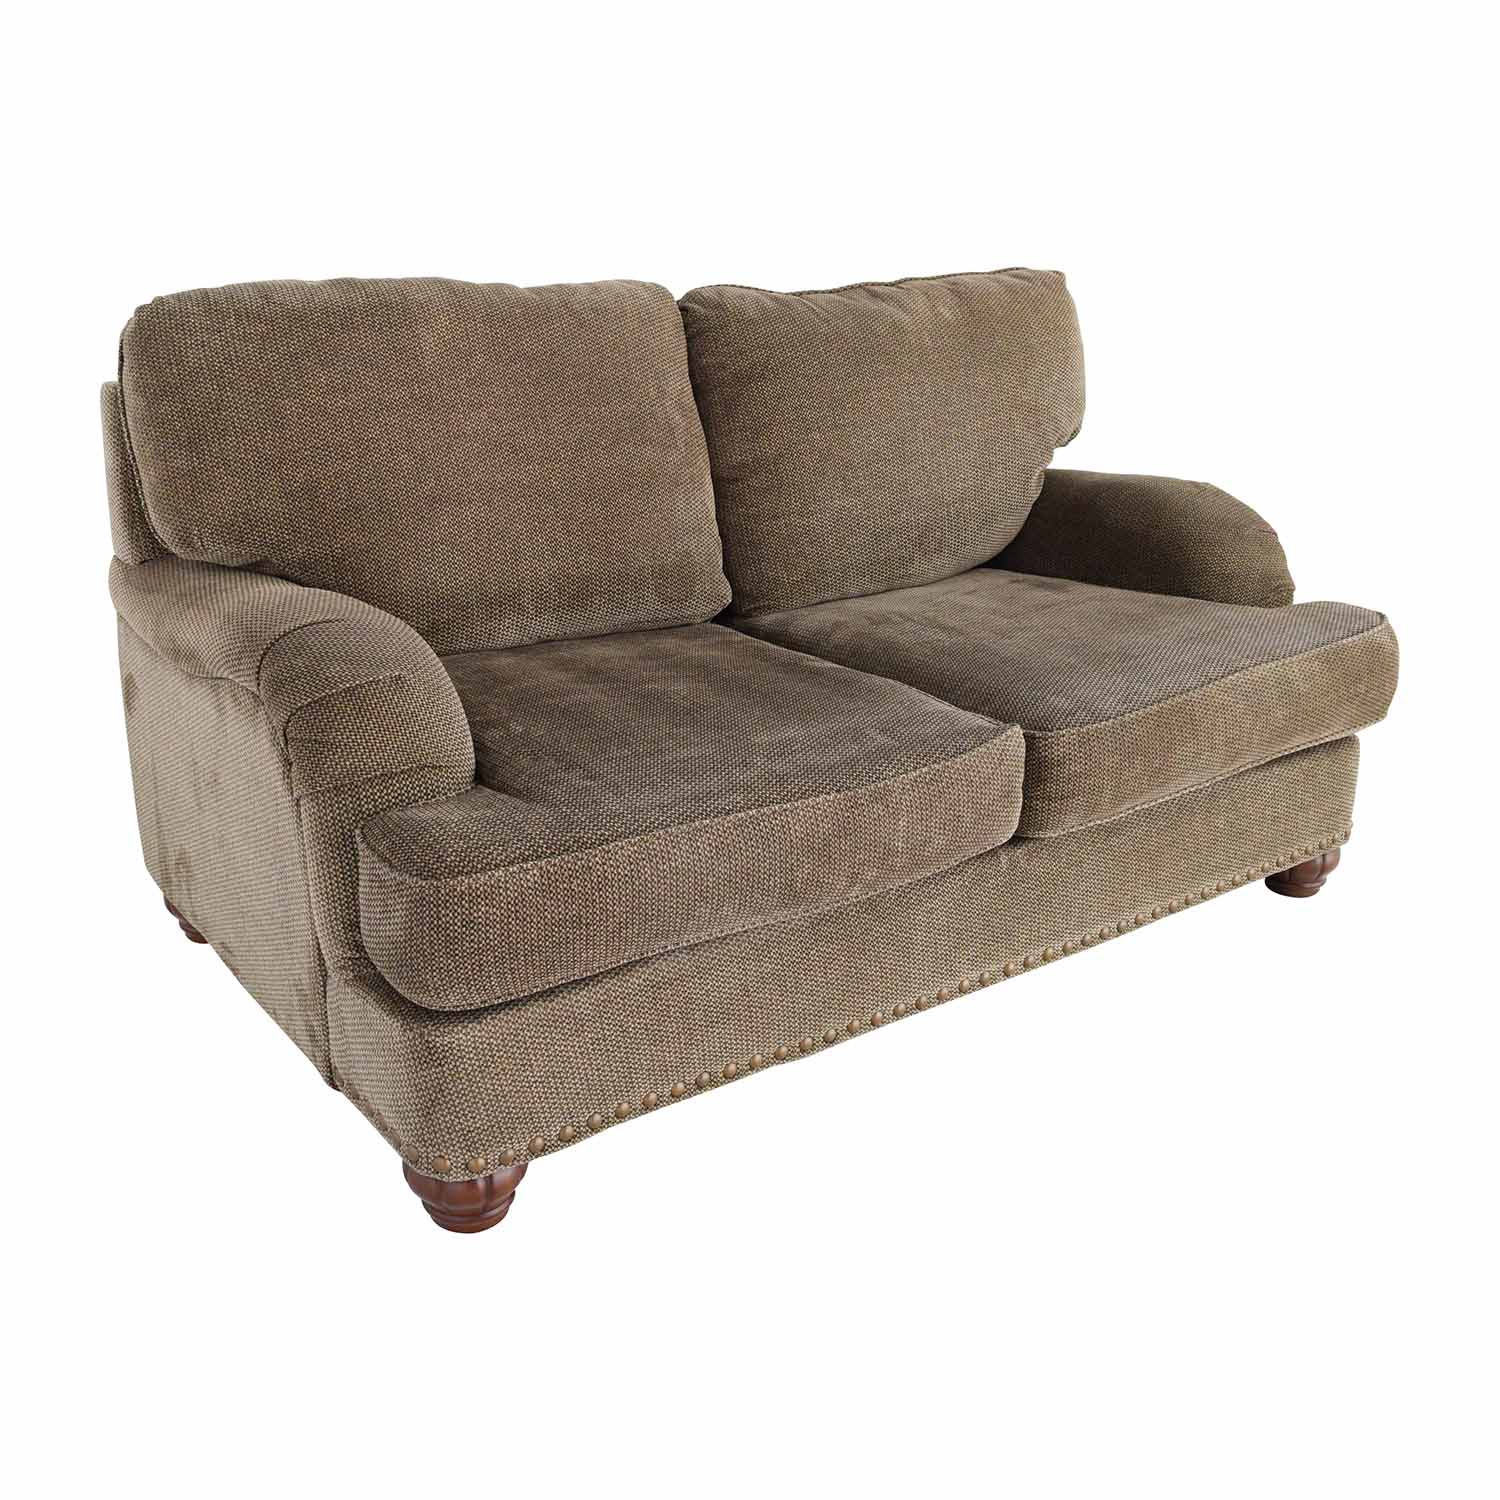 Ashley Sofa Loveseat 78 Off Ashley Furniture Ashley Furniture Barclay Place